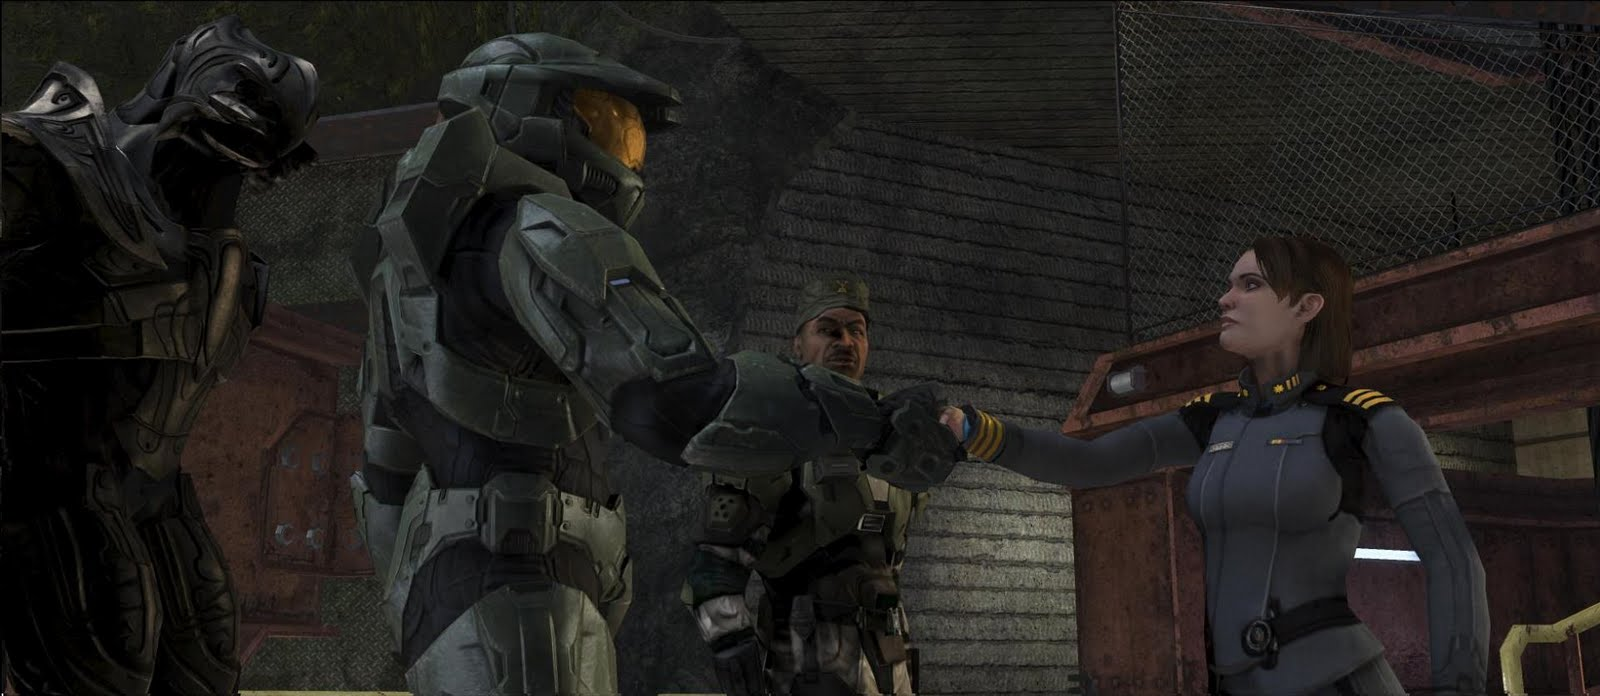 Anarchy In The Galaxy: Xbox 360 review: Halo 3